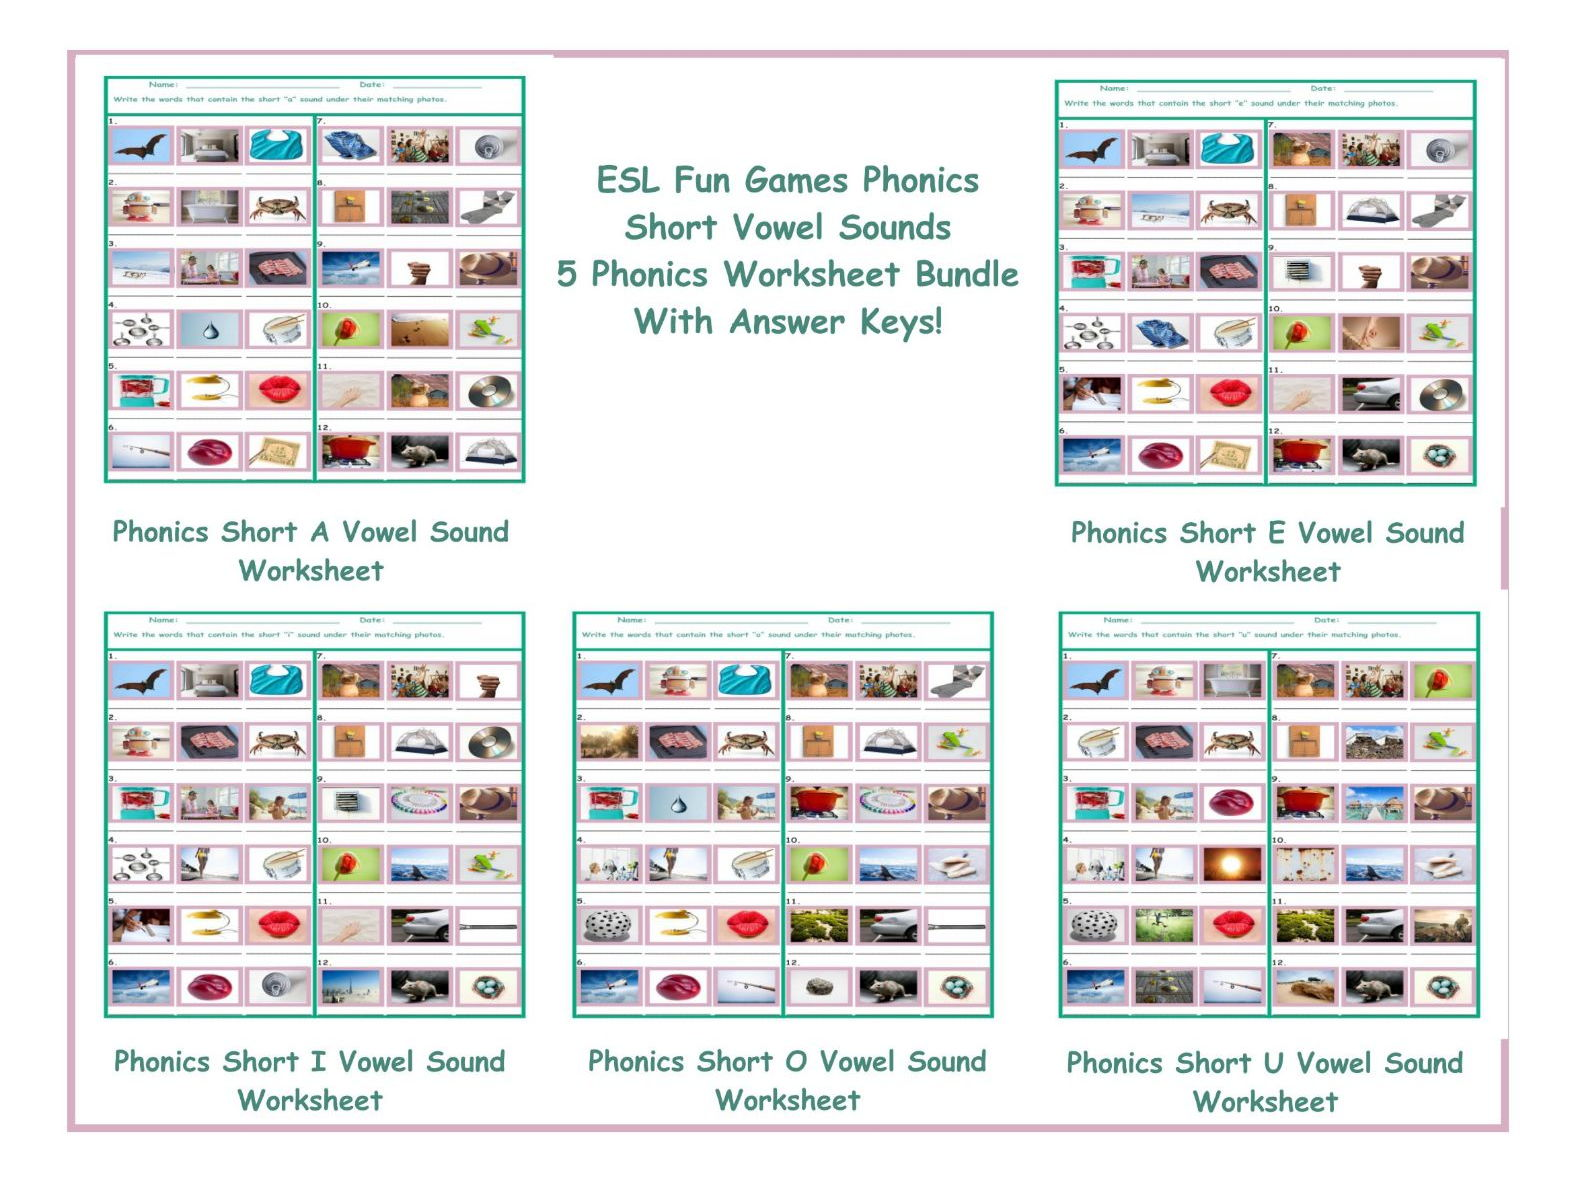 Phonics Short O Vowel Sound Worksheet by eslfungames Teaching – Vowel Sound Worksheets